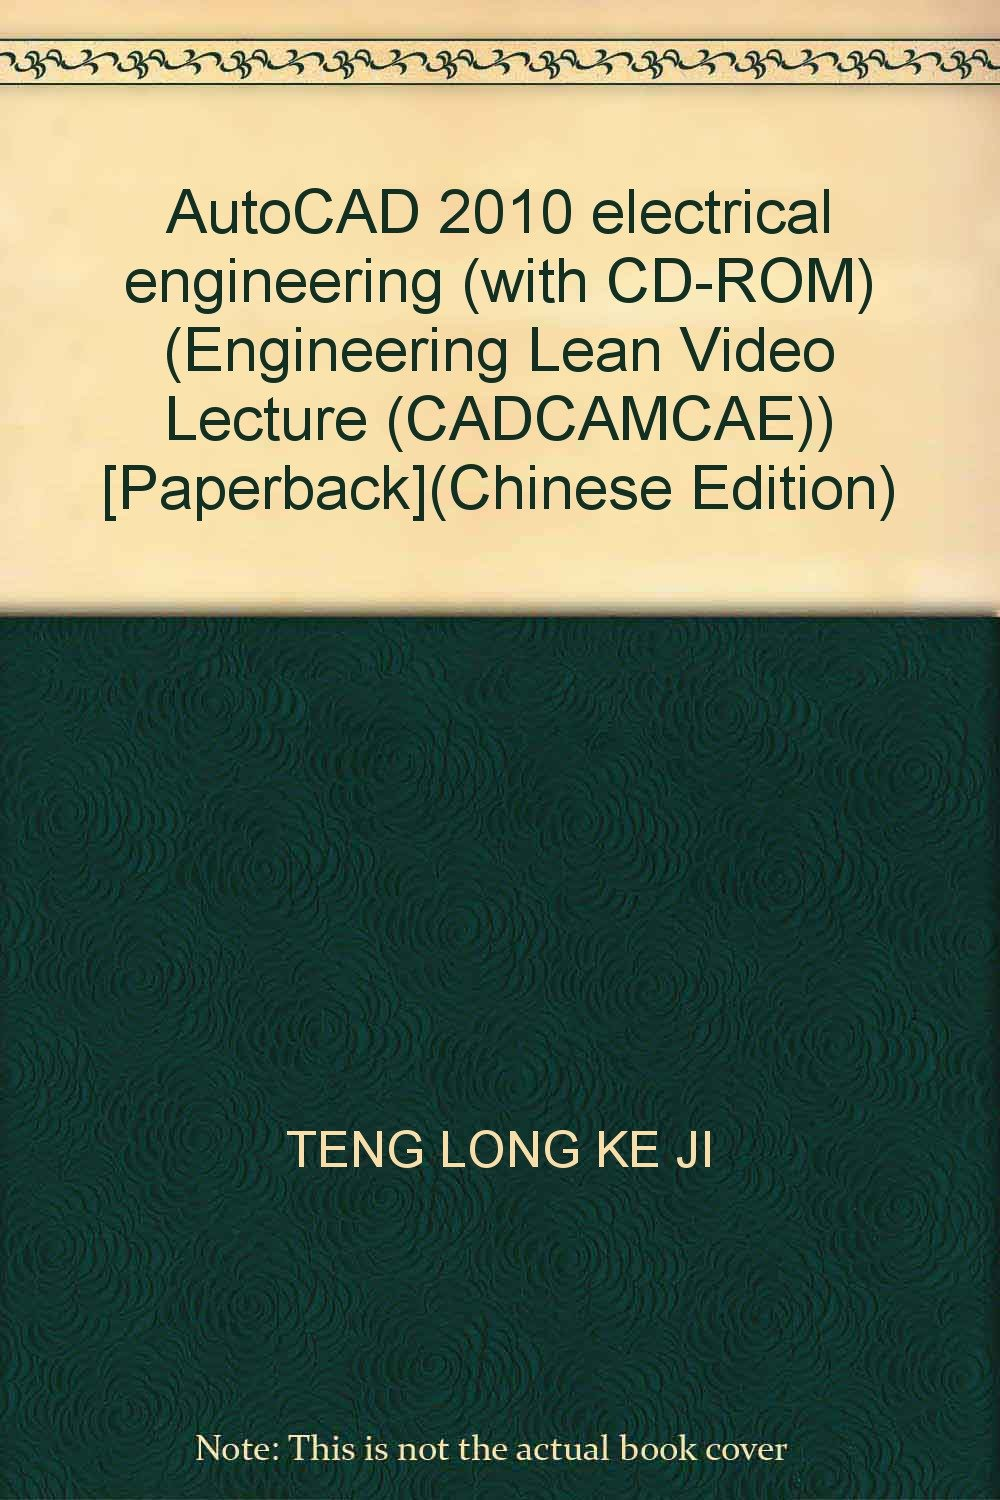 AutoCAD 2010 electrical engineering (with CD-ROM) (Engineering Lean Video Lecture (CADCAMCAE)) [Paperback](Chinese Edition) pdf epub